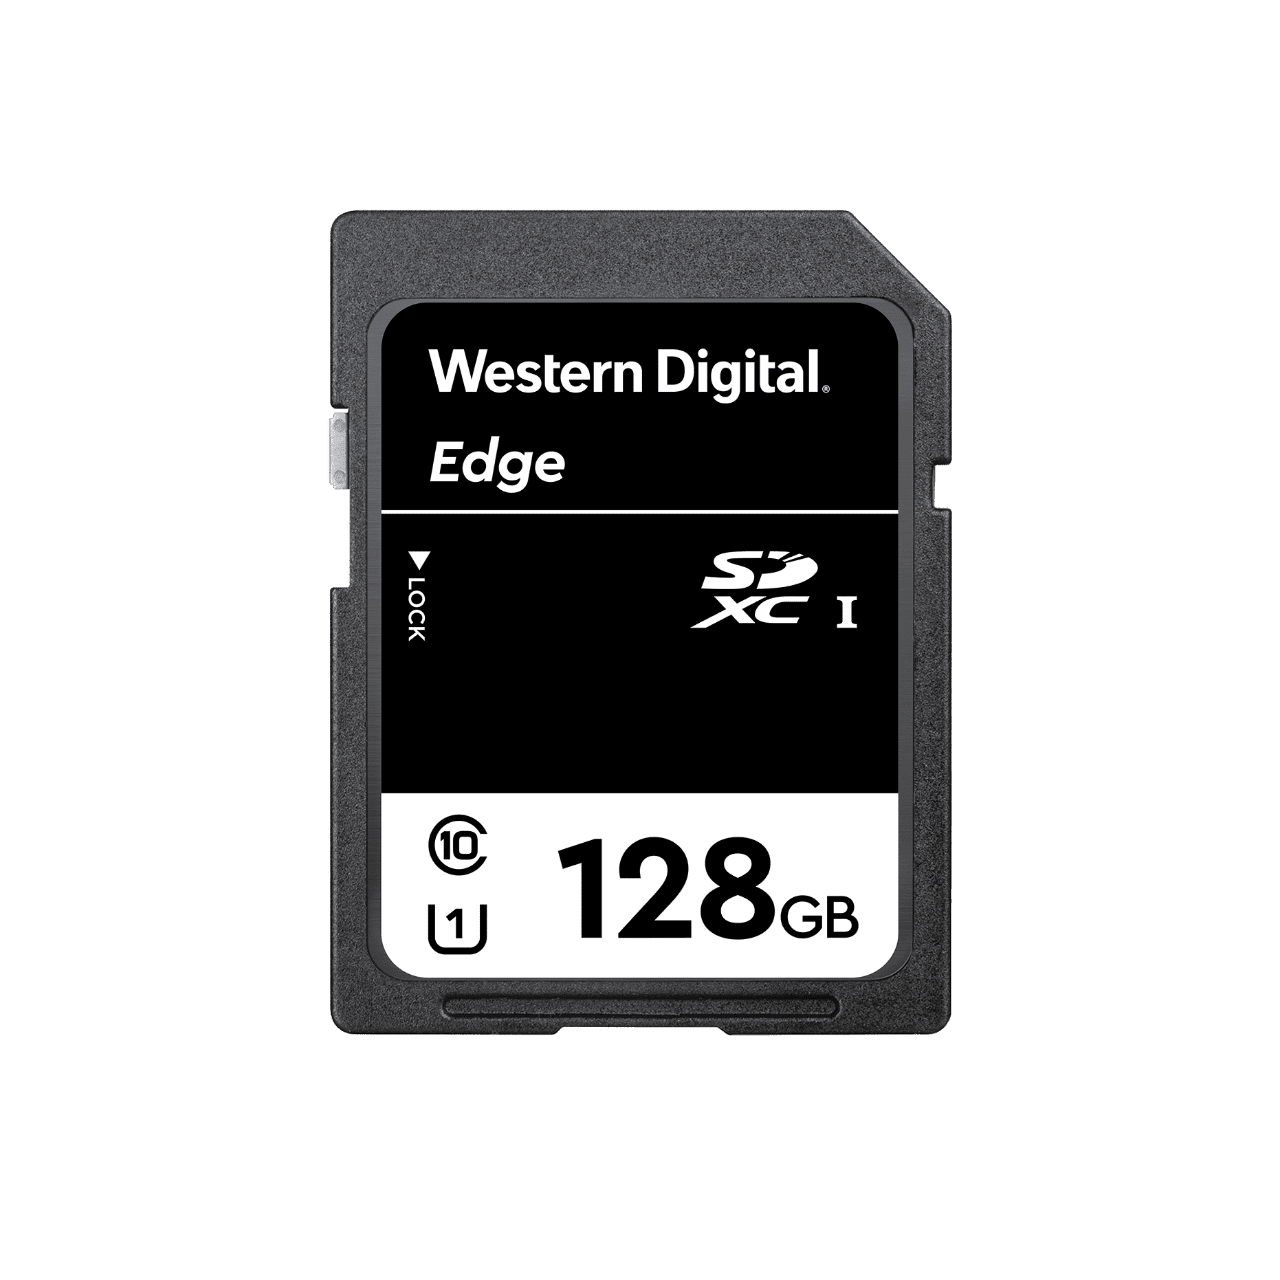 WD_Automotive_SD_Card_Label_8GB